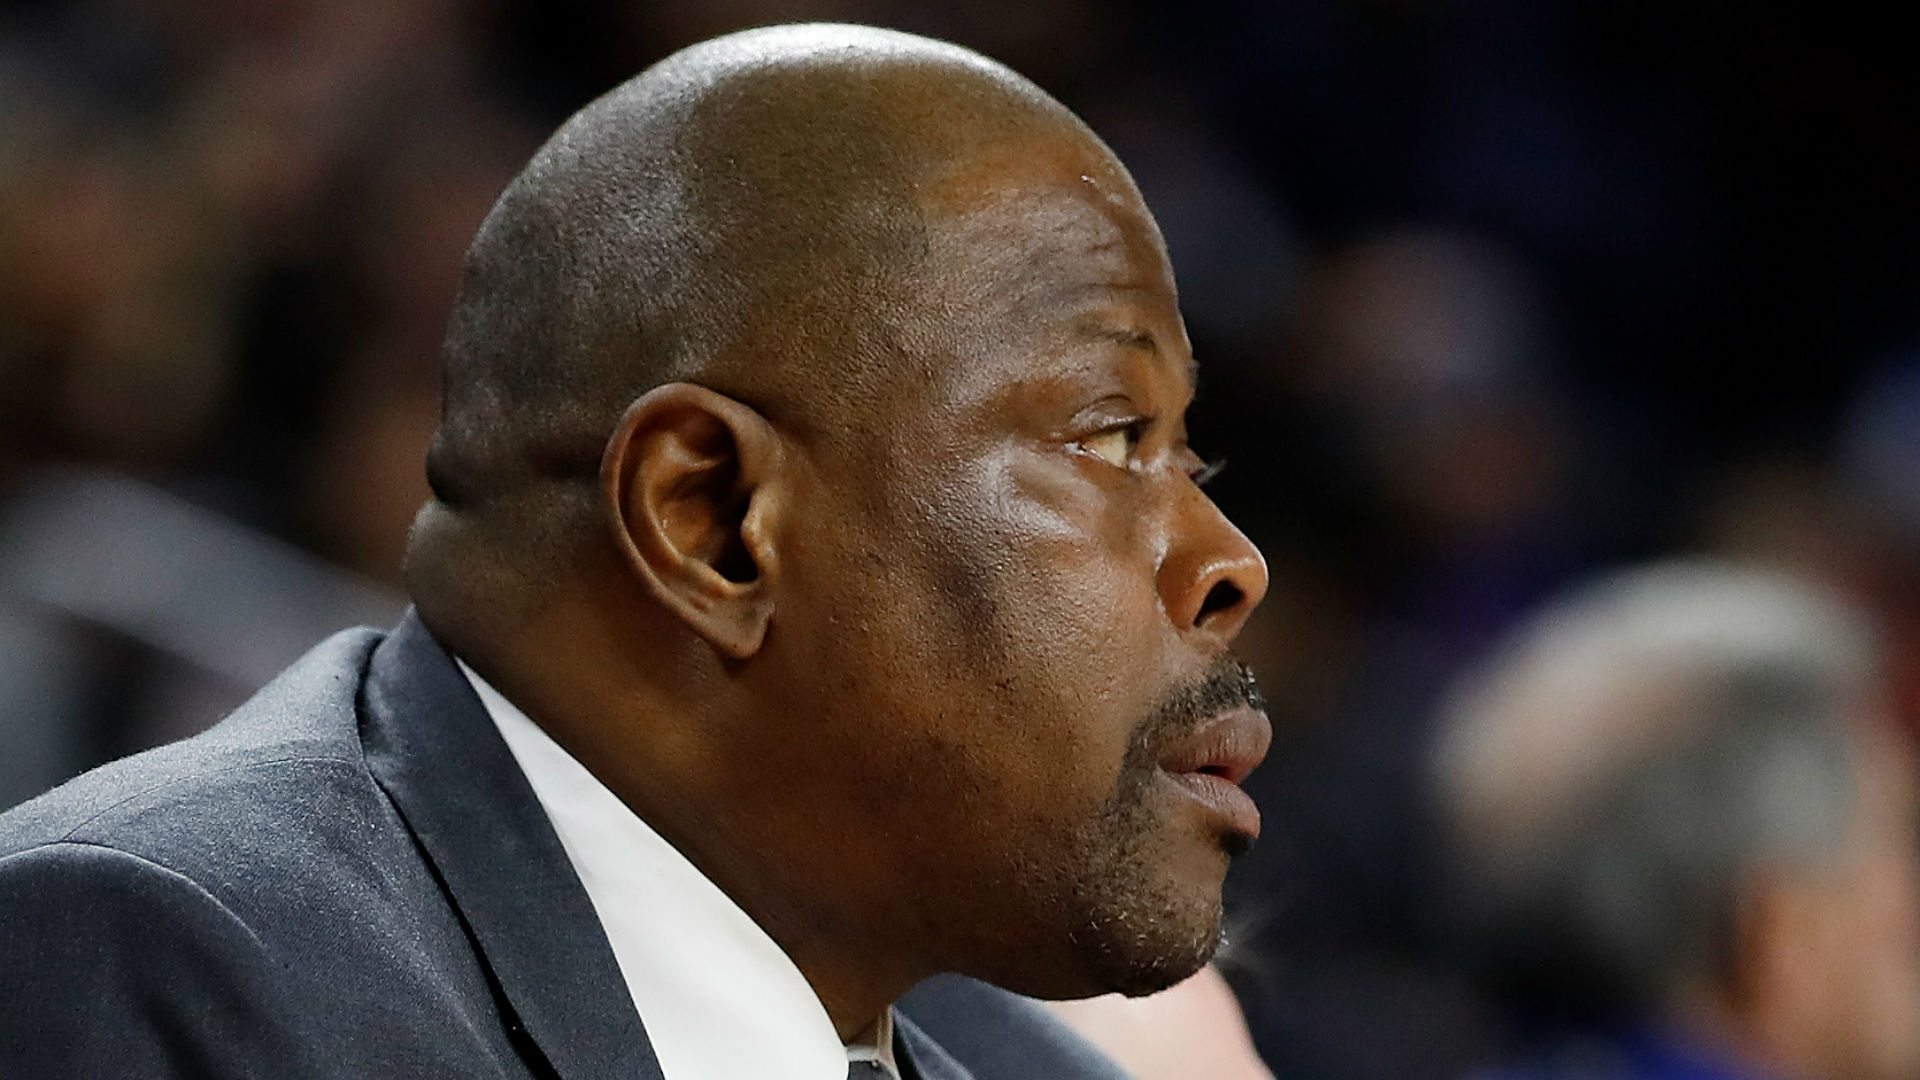 Georgetown hires alumnus Patrick Ewing as men's basketball coach